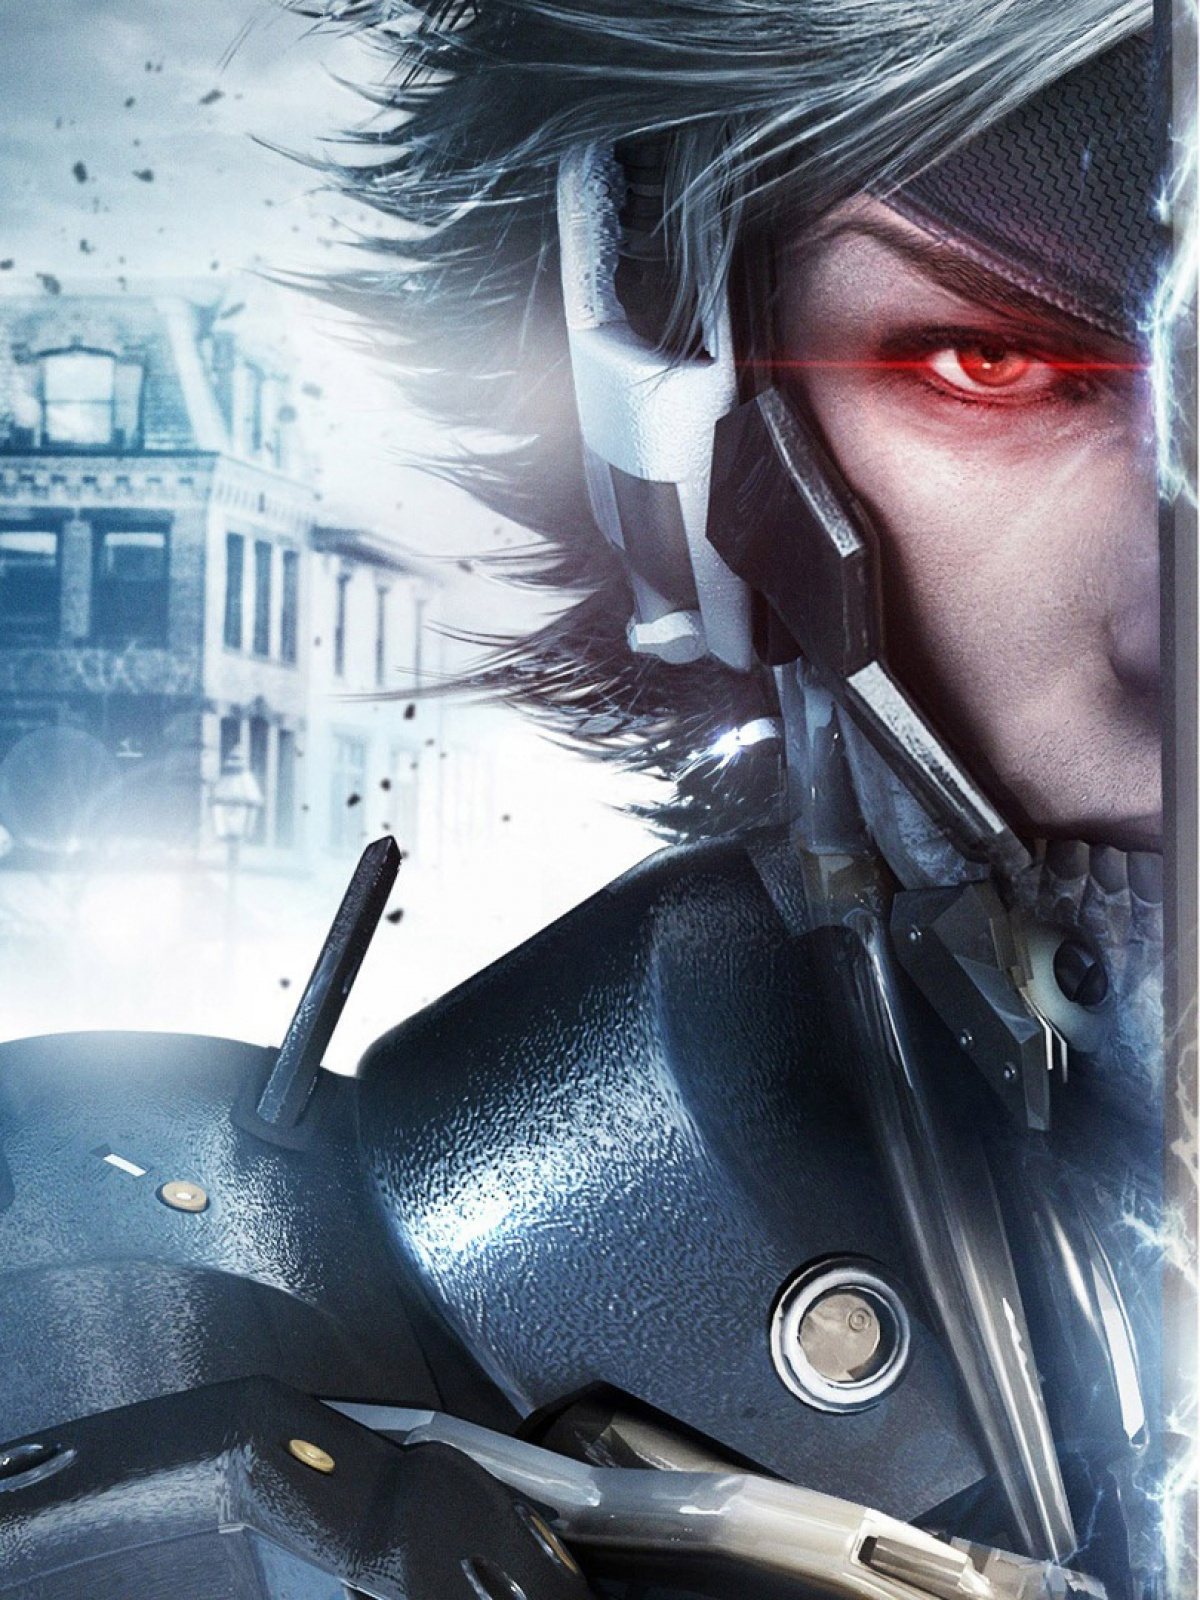 raiden metal gear rising revengeance mobile wallpaper - mobiles wall